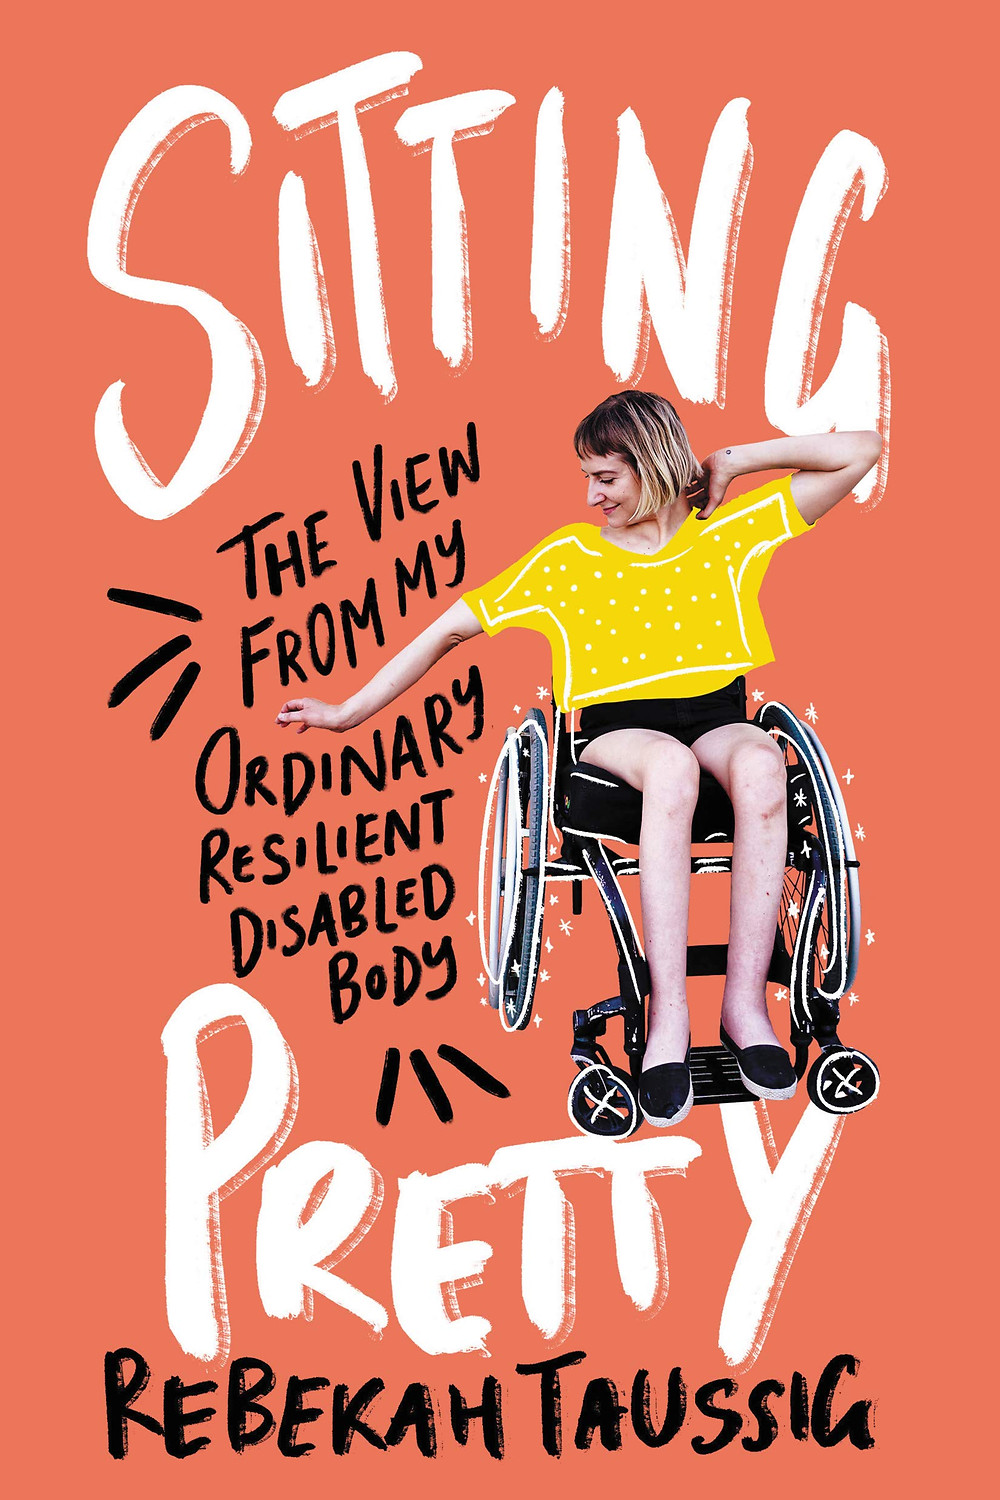 Cover of Sitting Pretty, featuring the author in her wheelchair with doodles over her clothing and chair